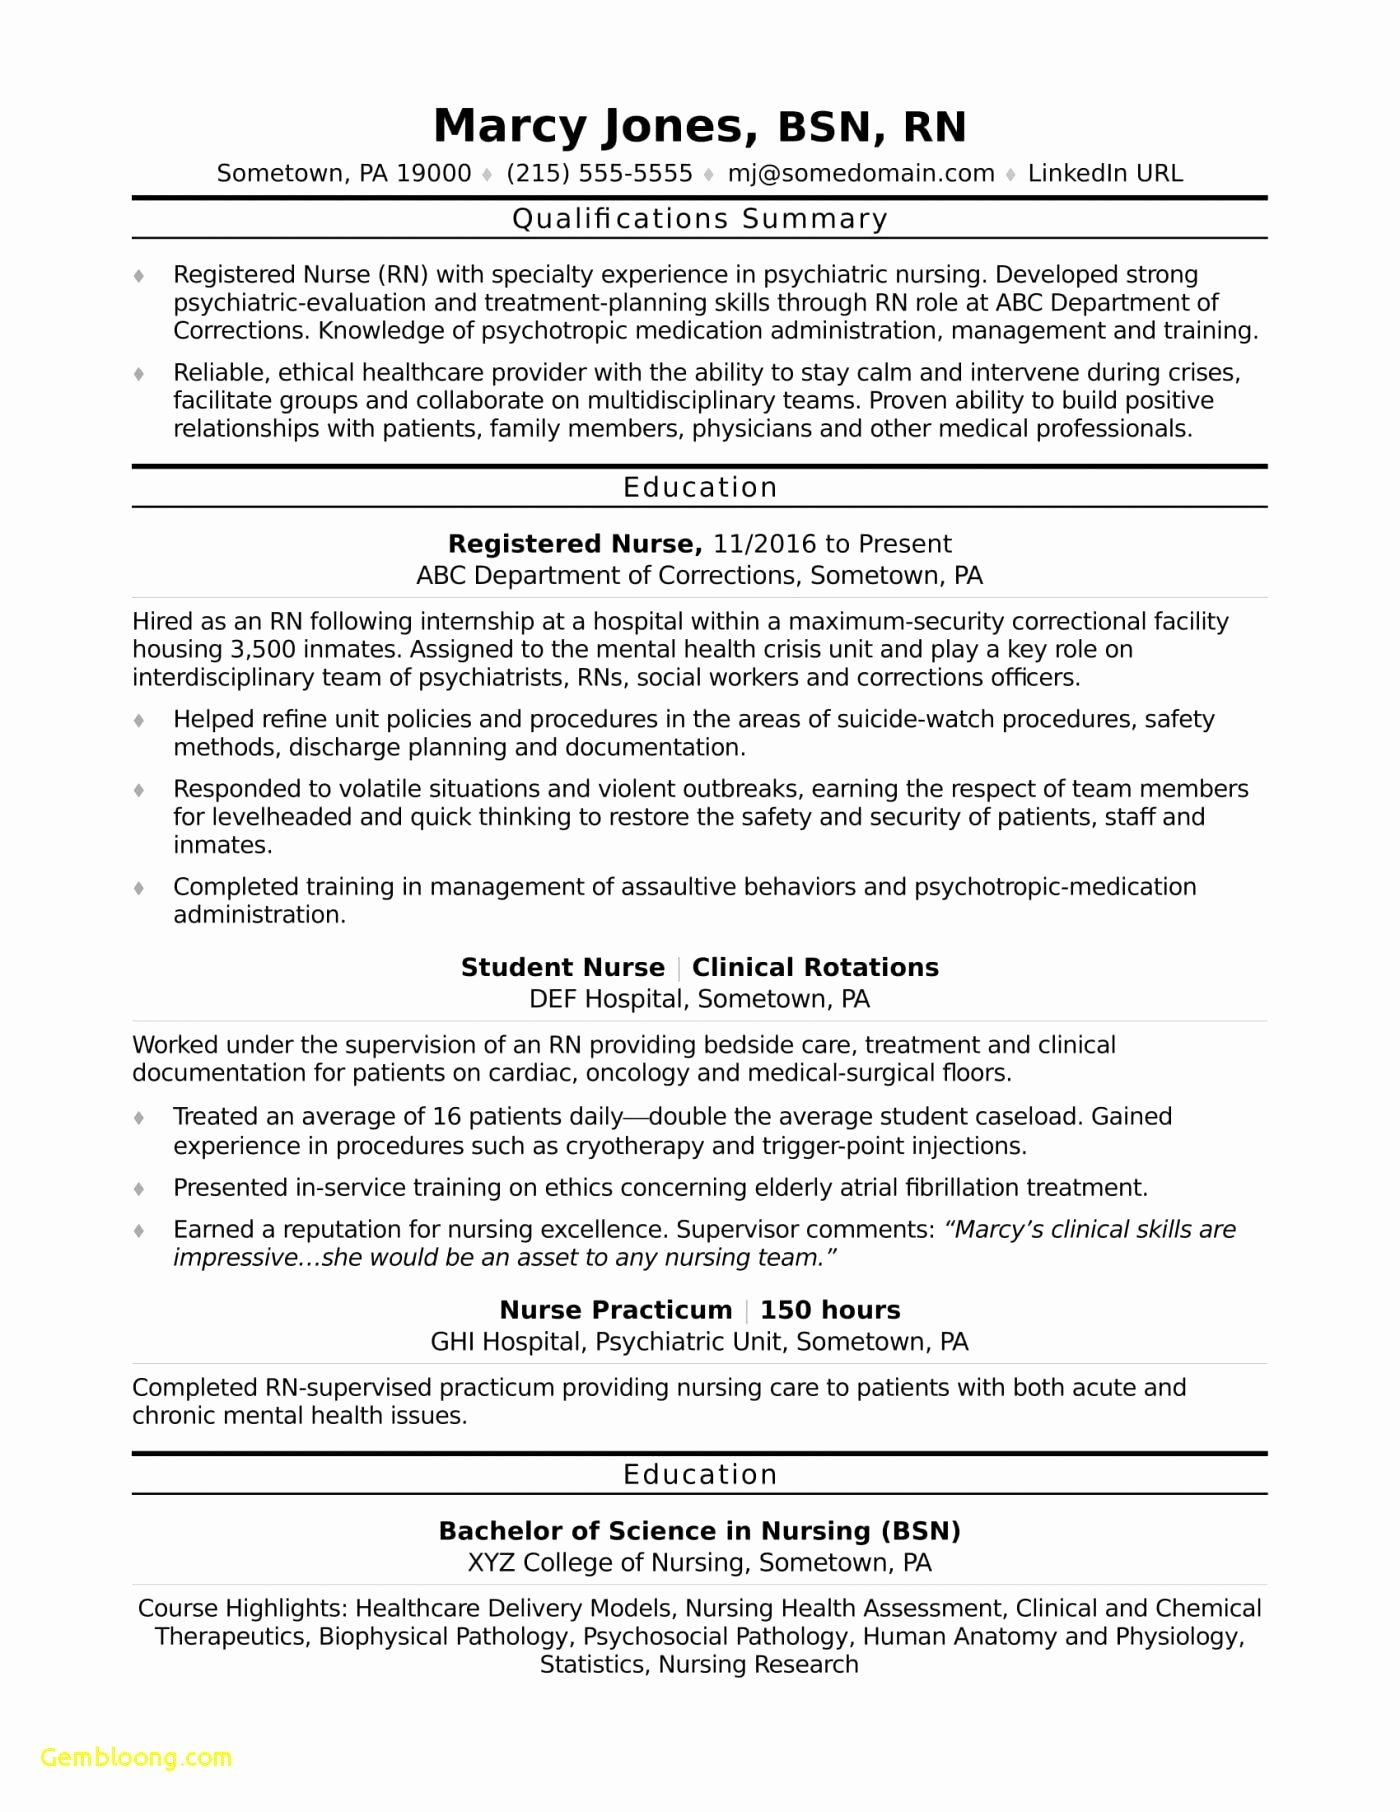 Case Management Care Plan Template Lovely New Affirmative Action Plan Template for Small Business S